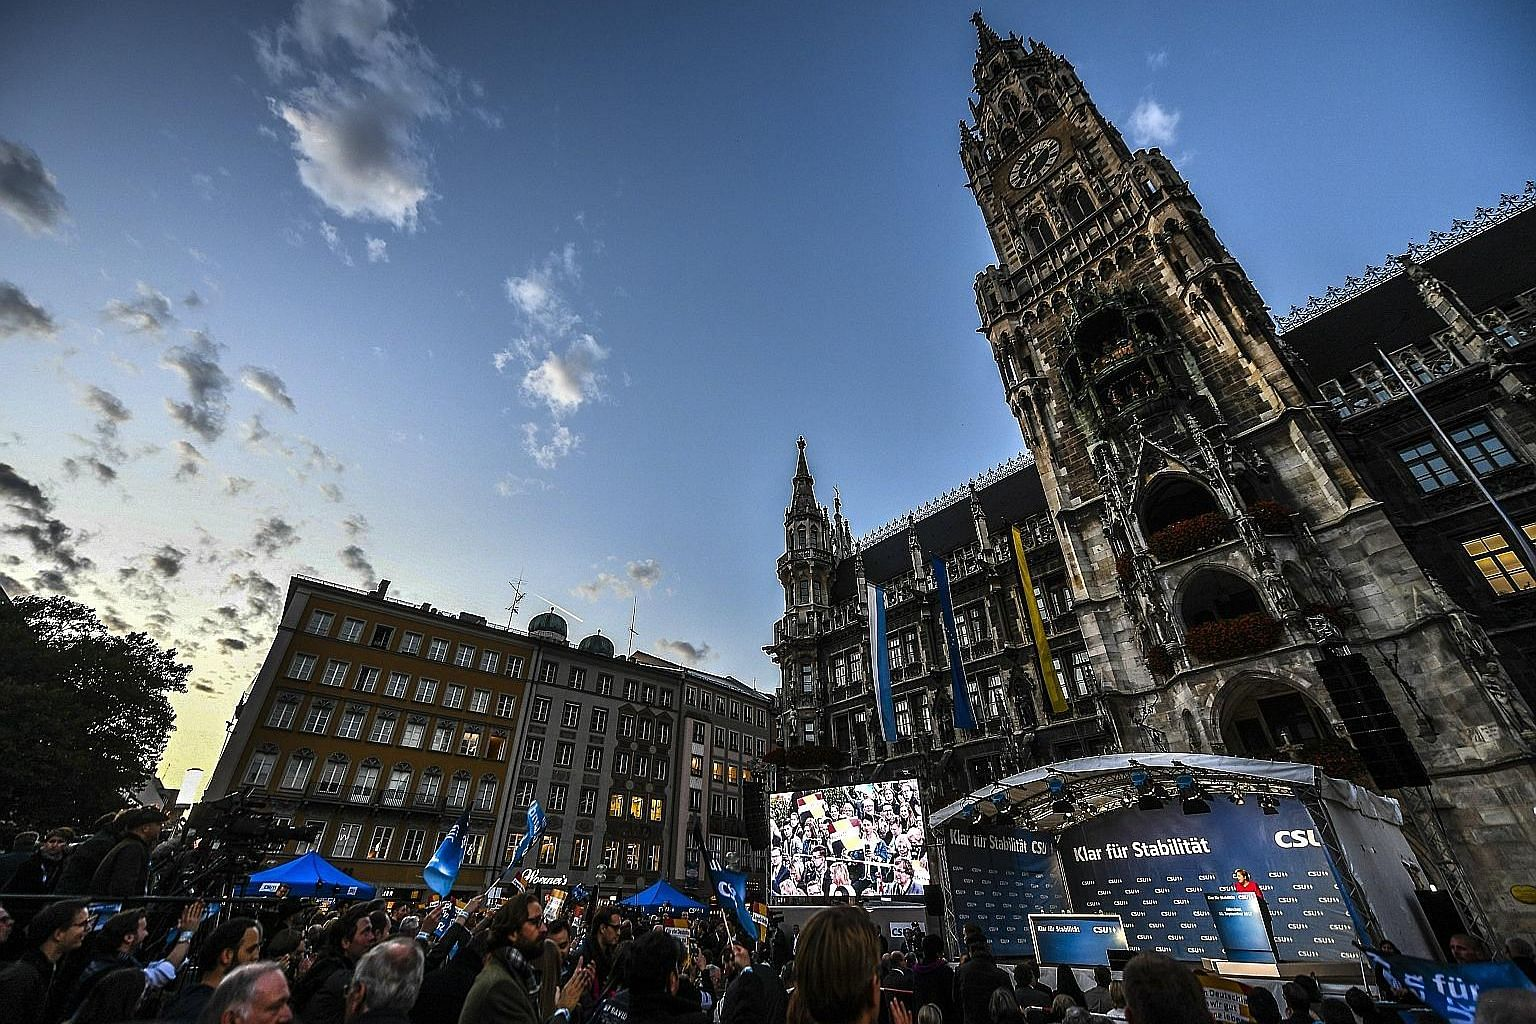 German Chancellor Angela Merkel campaigning at Marienplatz Square in Munich on Friday. Dr Merkel, who has dominated Germany's political life since 2005 and is expected to win another term, may find it to be her hardest yet.